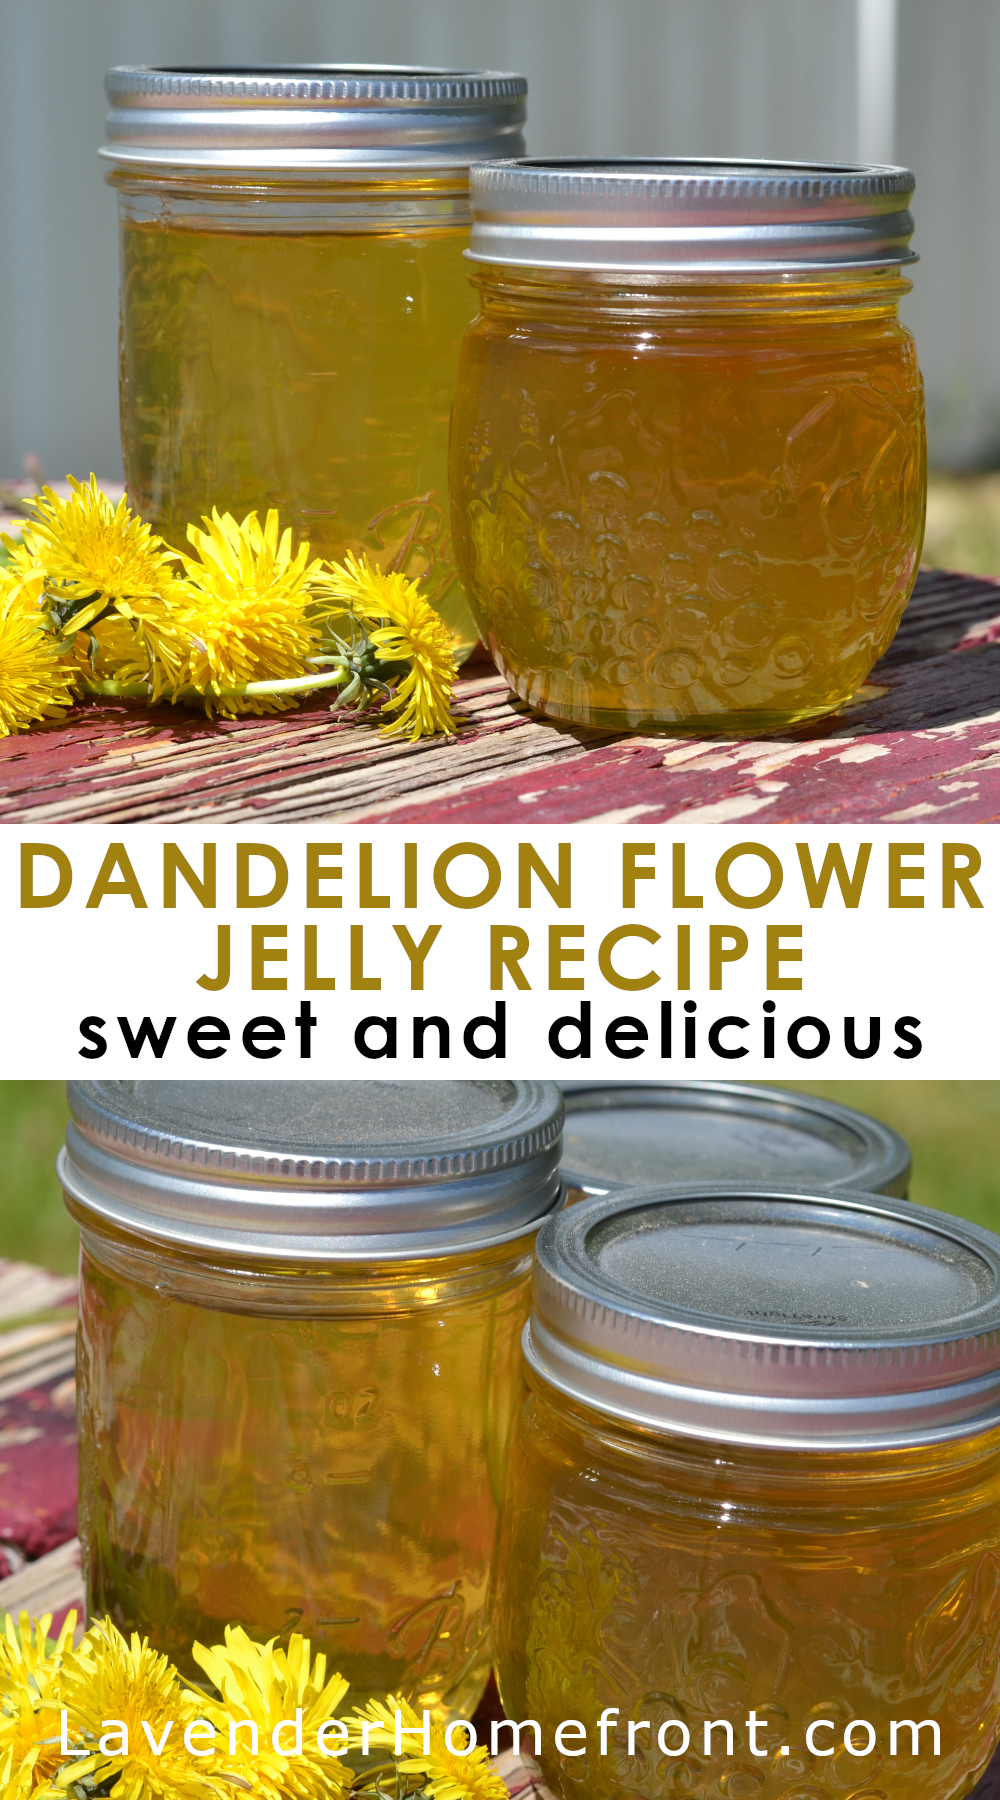 Dandelion Jelly pinnable image with text overlay.